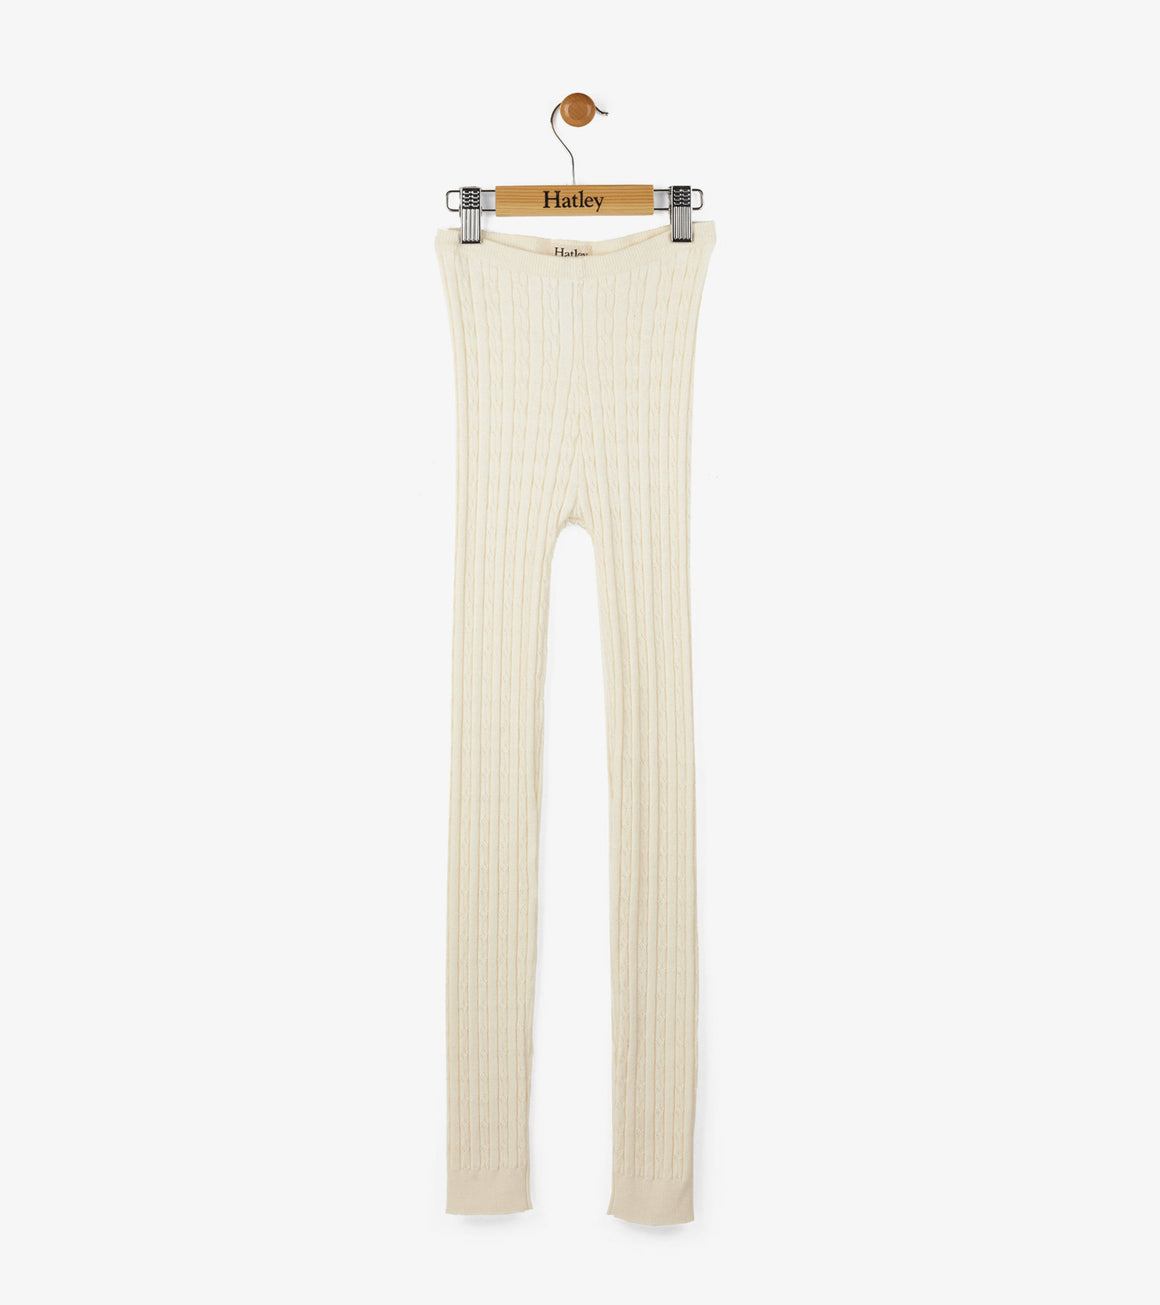 Hatley | Cream Cable Knit Footless Tights